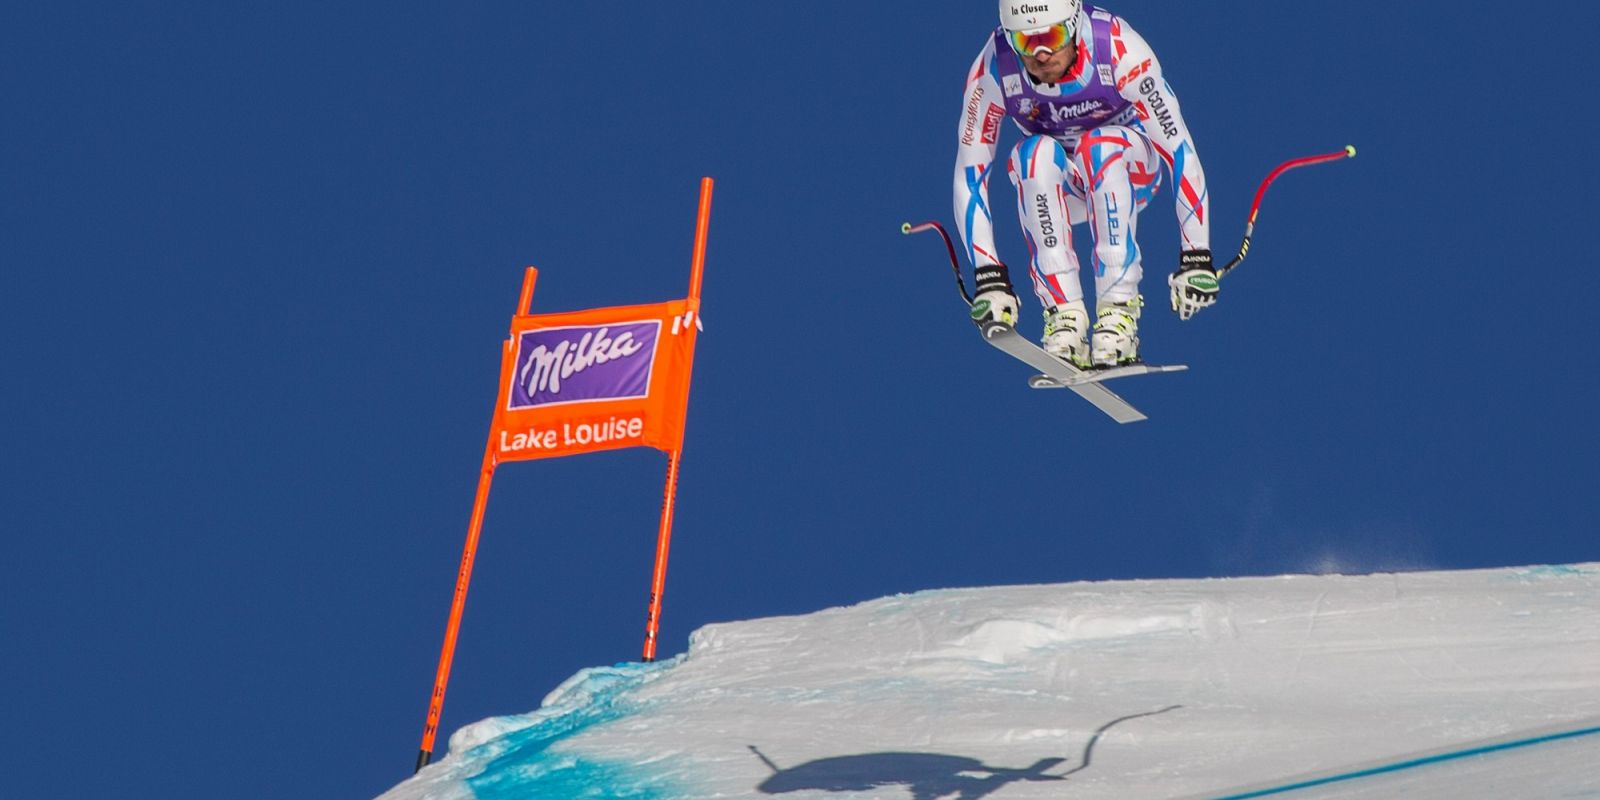 FIS Men's World Cup at Lake Louise